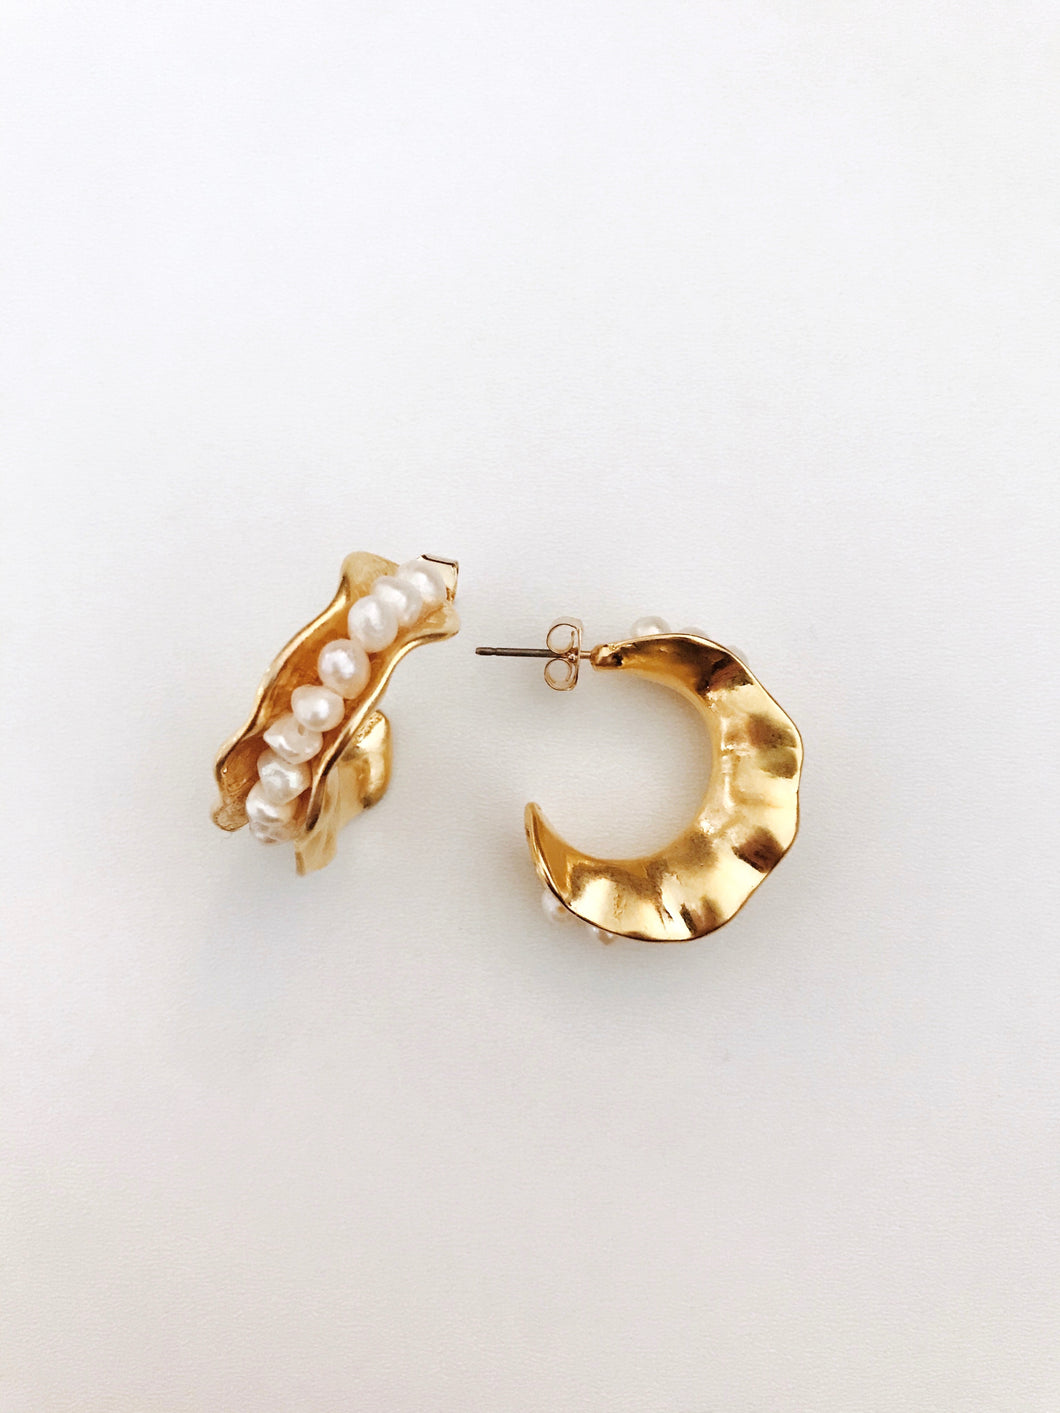 Bailey Pearl Hoop Earrings